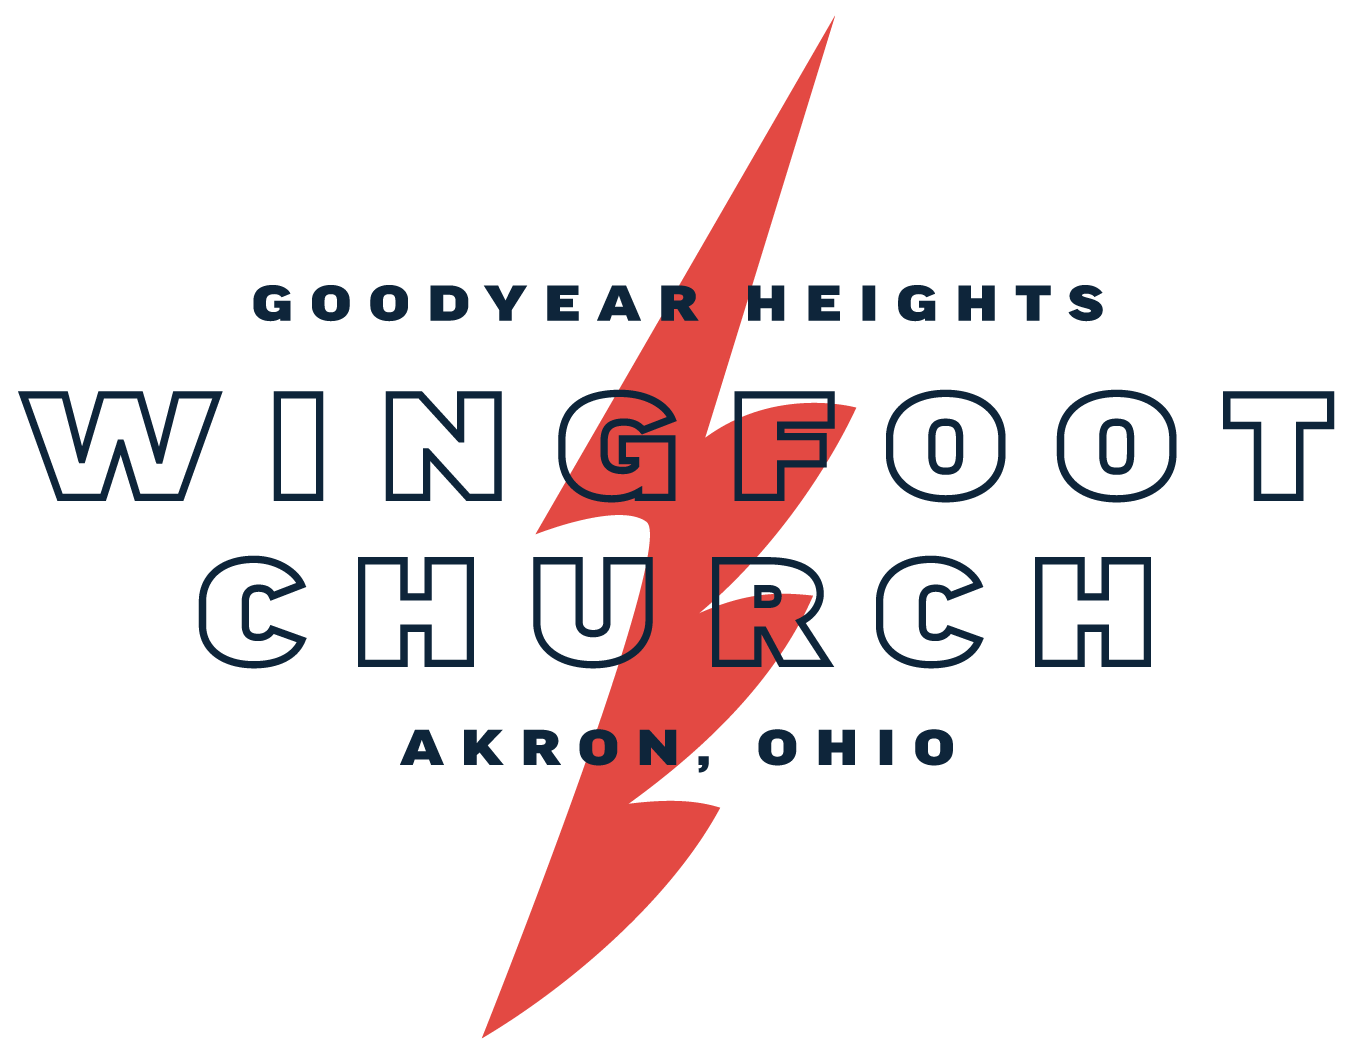 Wingfoot Church // Goodyear Heights Akron, Ohio